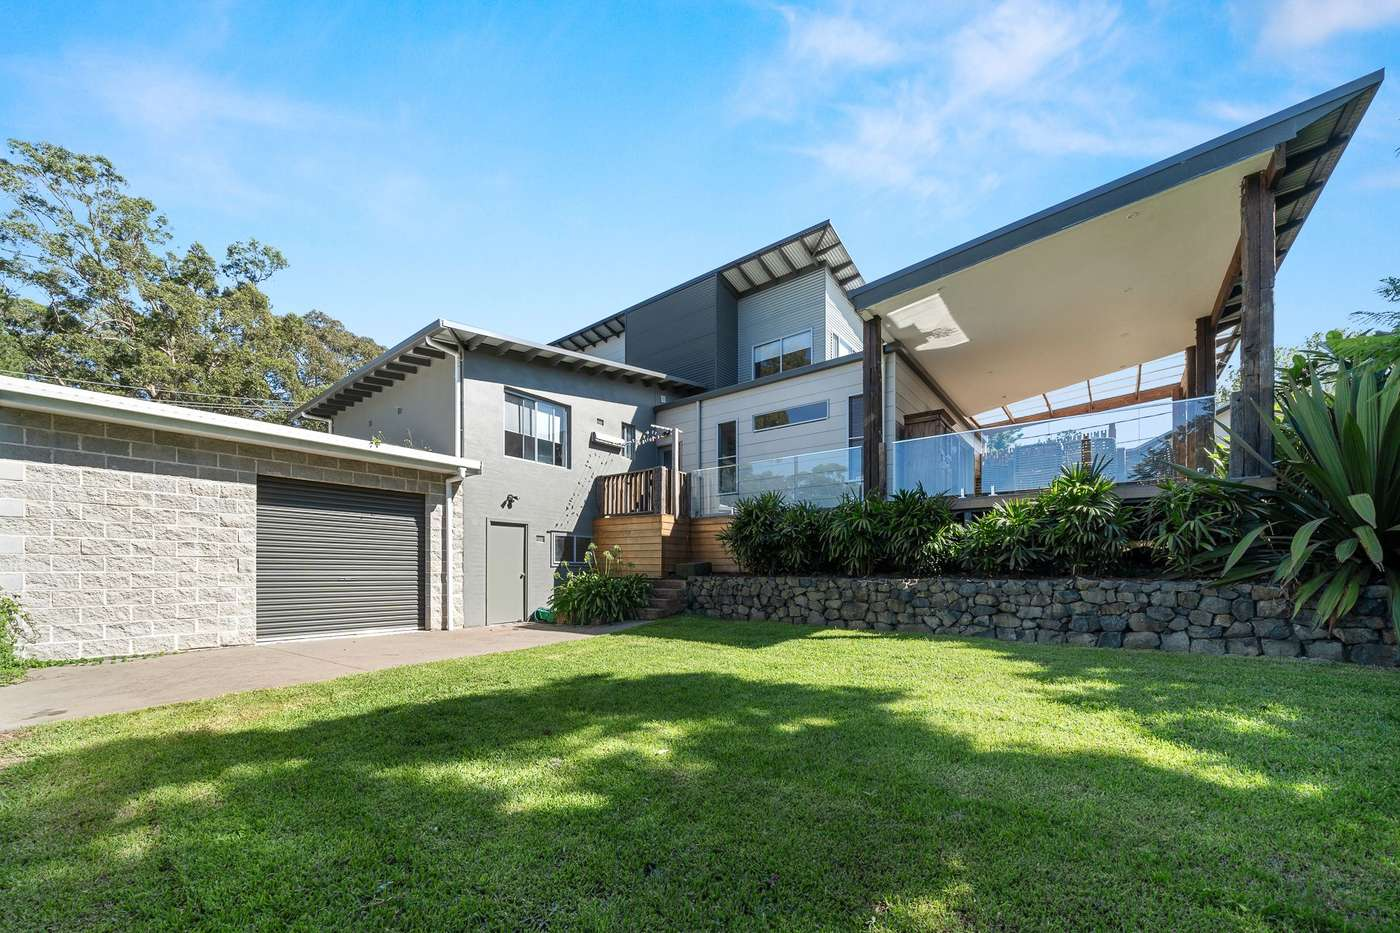 Main view of Homely house listing, 142 Osborne Street, Nowra, NSW 2541